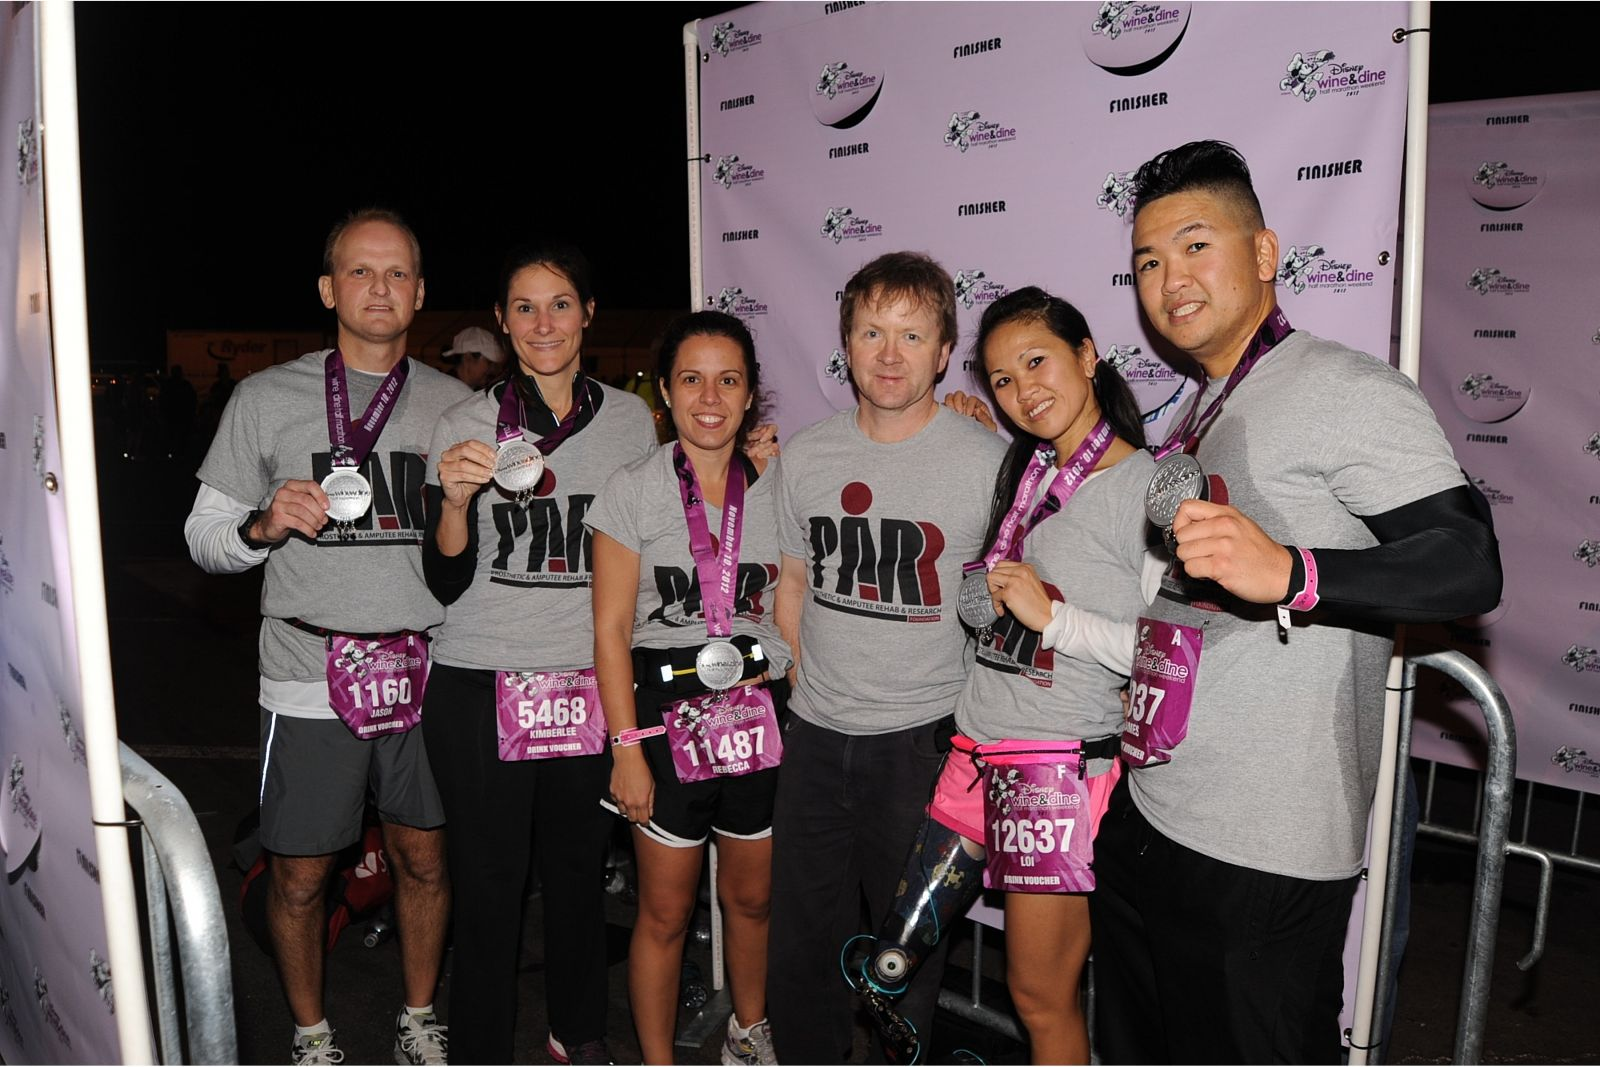 Disney's Wine and Dine Half Marathon Team 2012